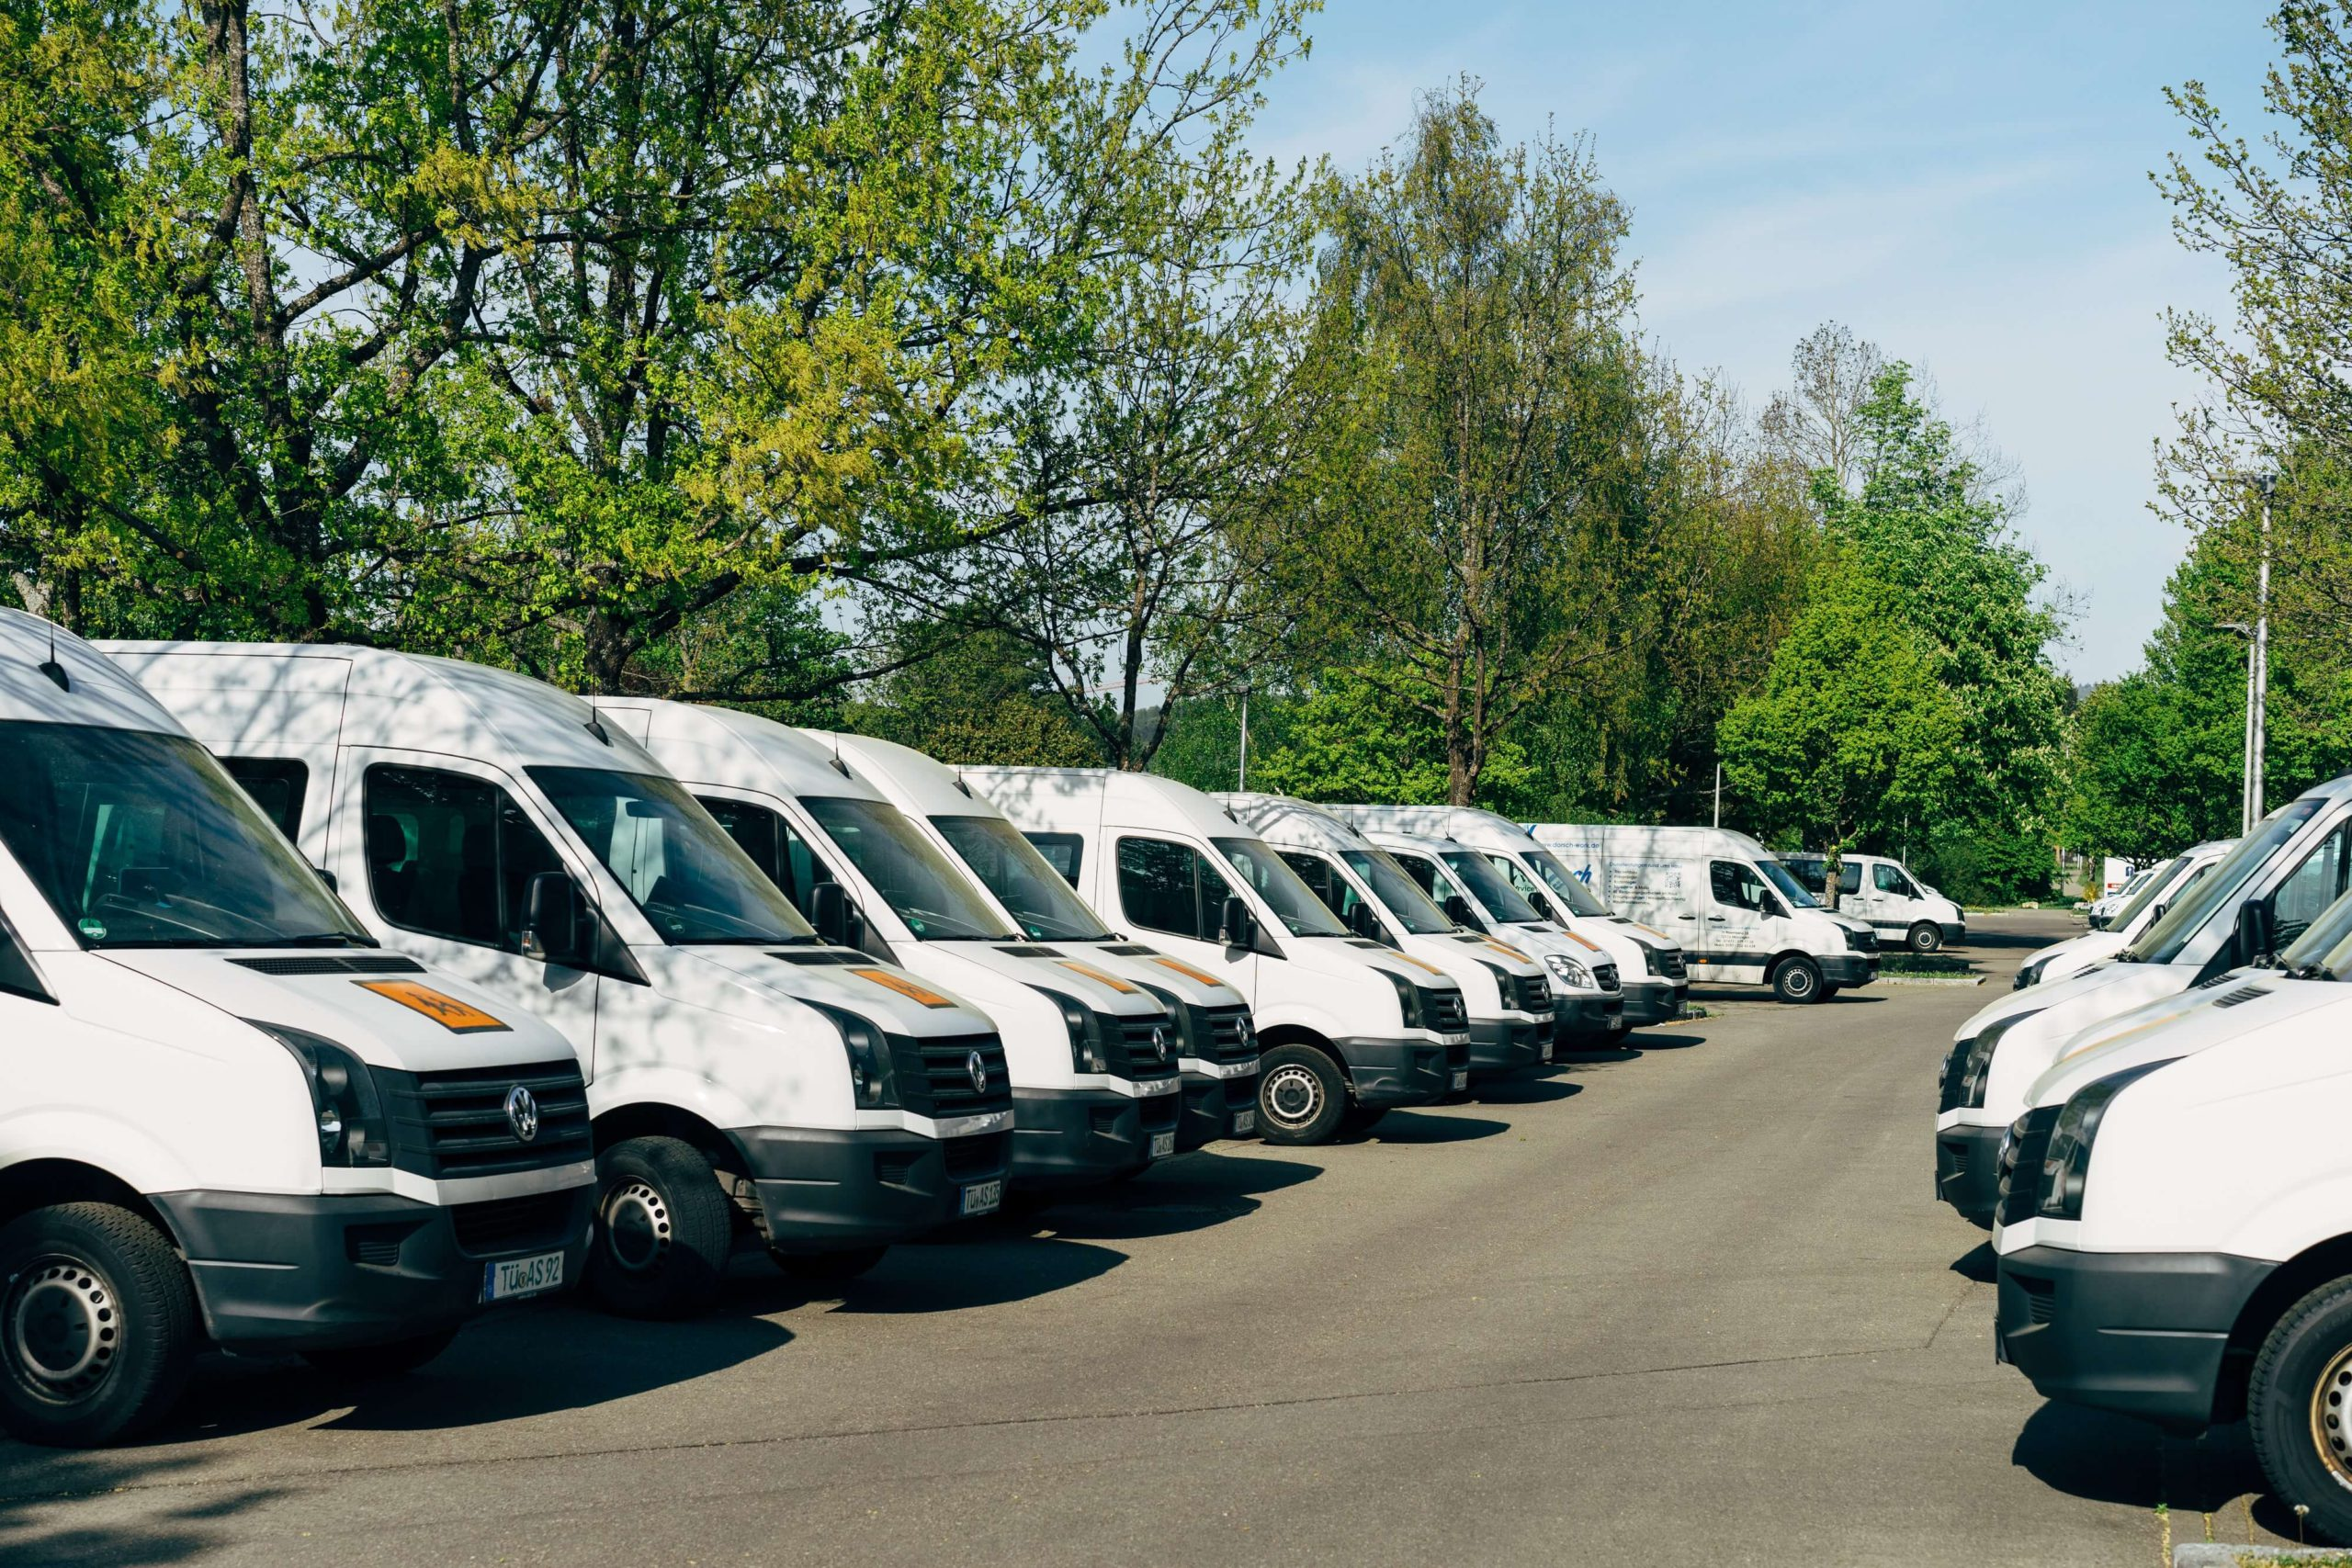 Practical Car And Van Rental Enters Exclusive Agreement With Telematics Provider Simplytrak For Over 4000 Vehicles